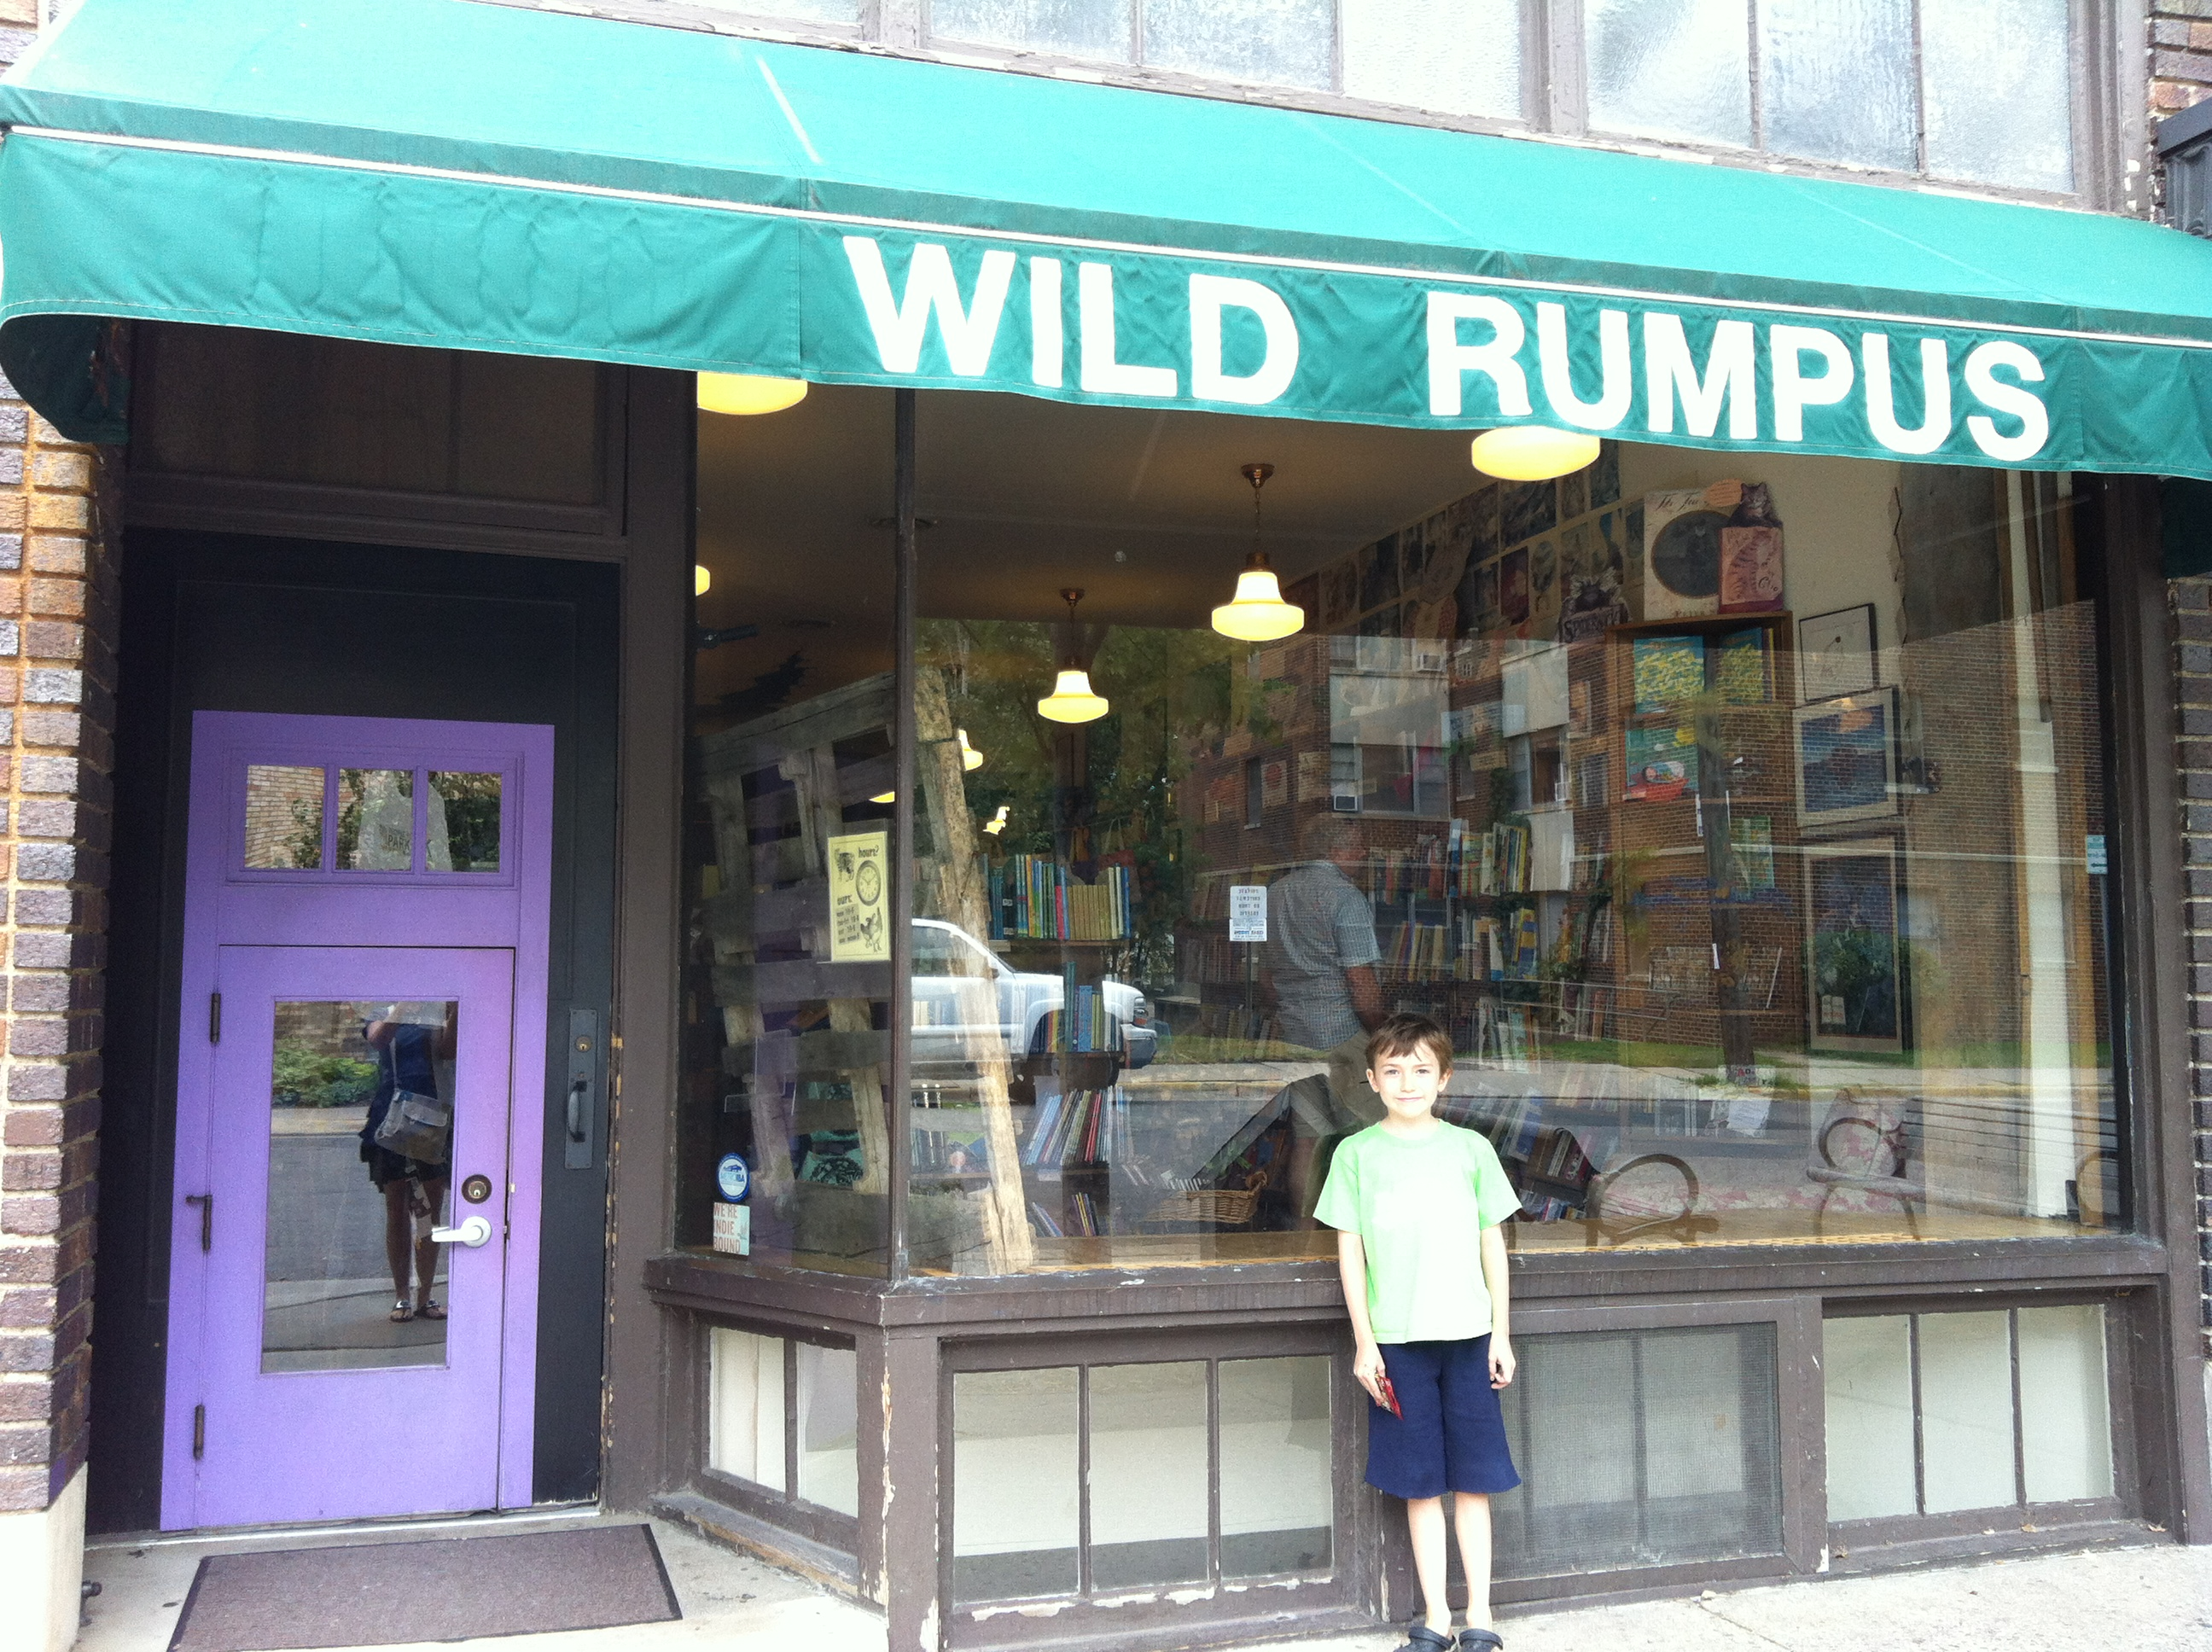 Photo Friday – Wild Rumpus in Minneapolis